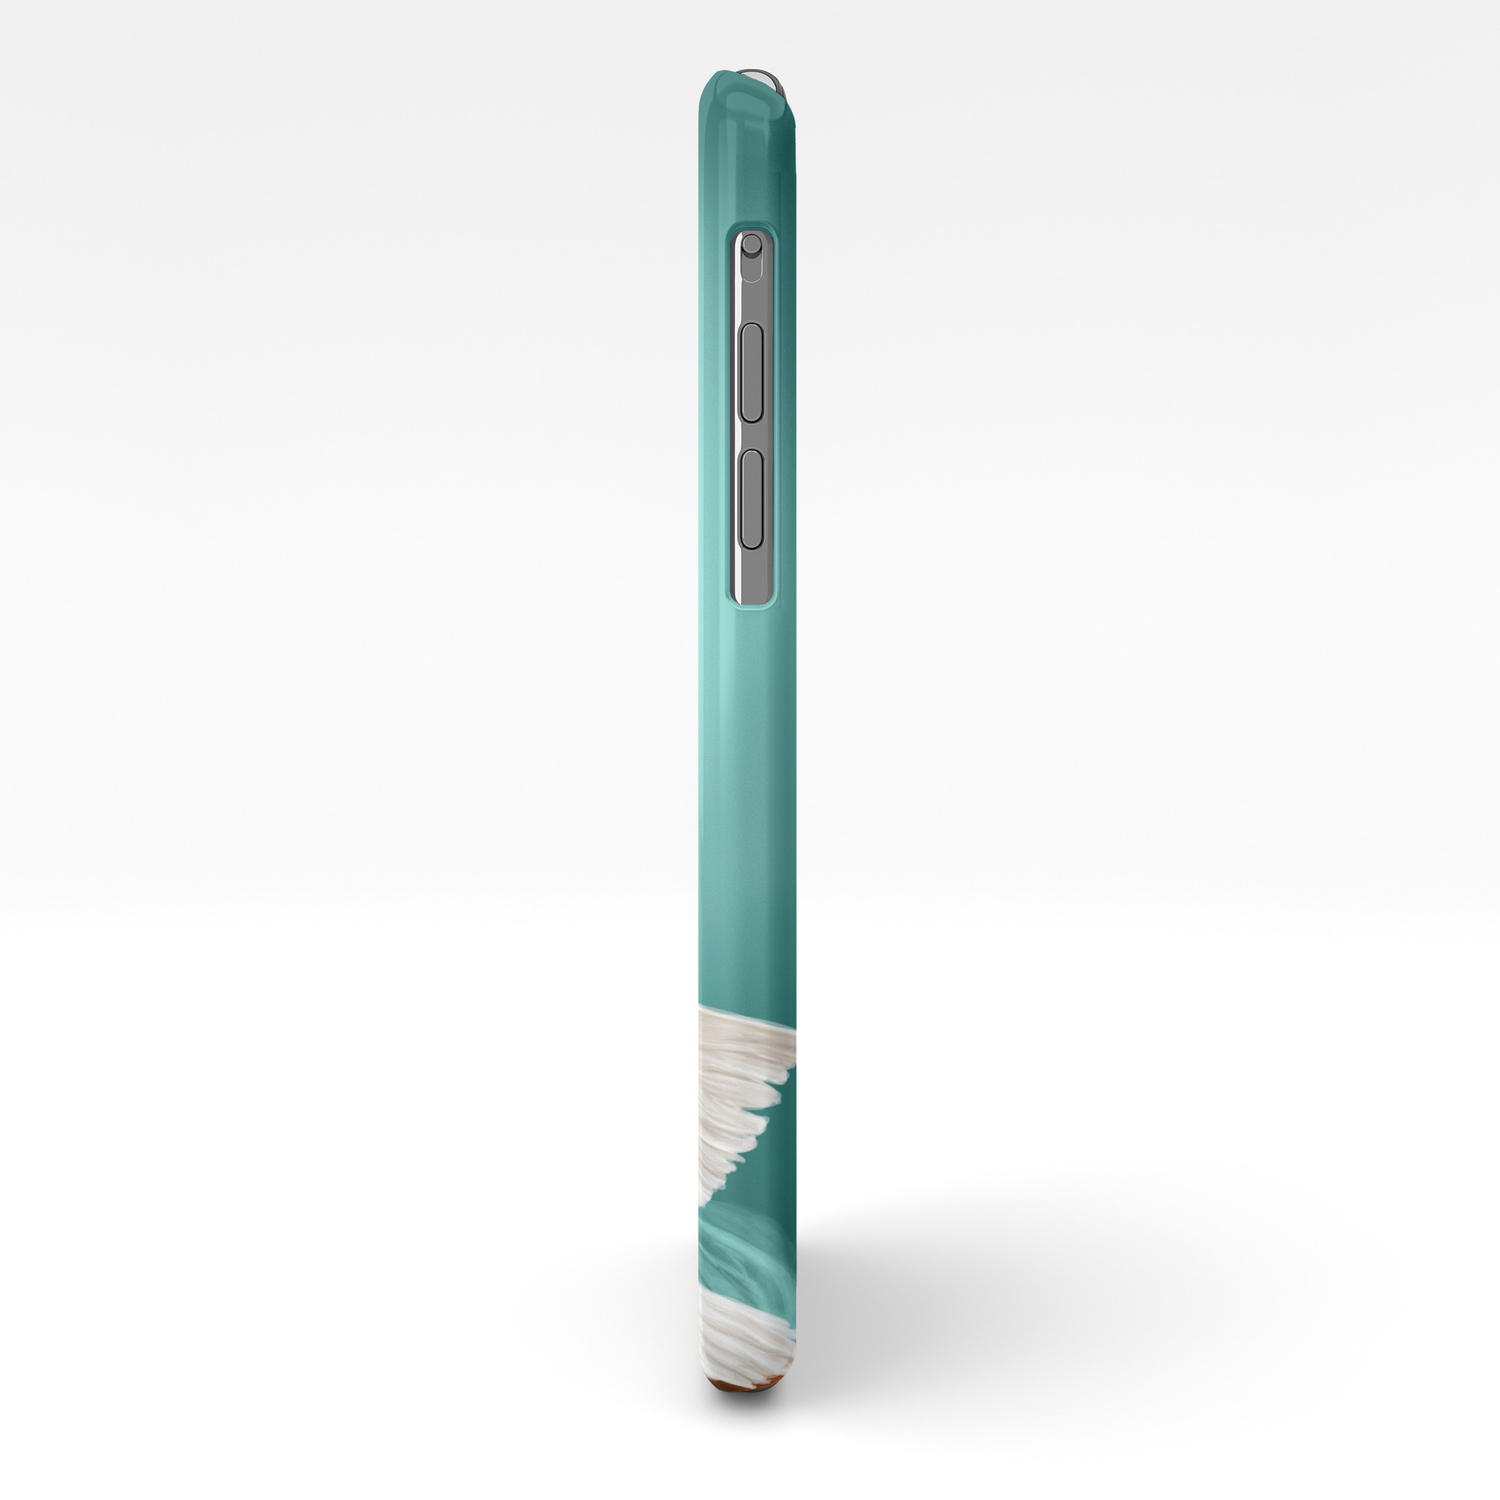 The Sultana iPhone 11 case